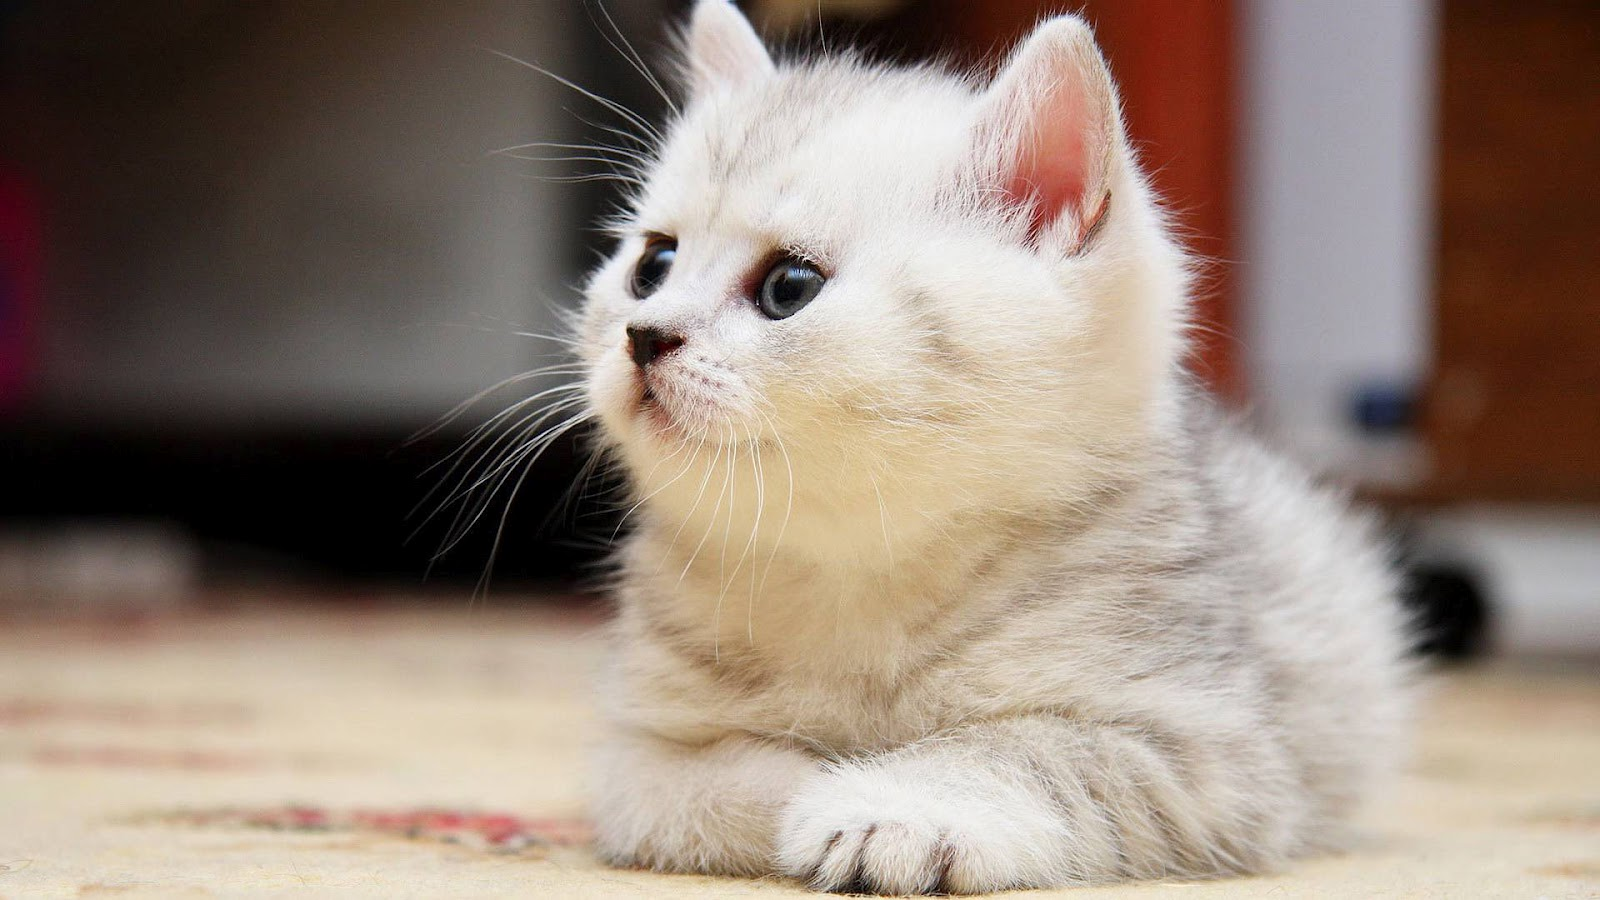 Free Download Resting White Cat Wallpaper Hd Animals Wallpapers 1600x900 For Your Desktop Mobile Tablet Explore 73 White Cat Wallpapers Cat Desktop Wallpaper Black And White Cat Wallpaper Kitten Desktop Wallpaper